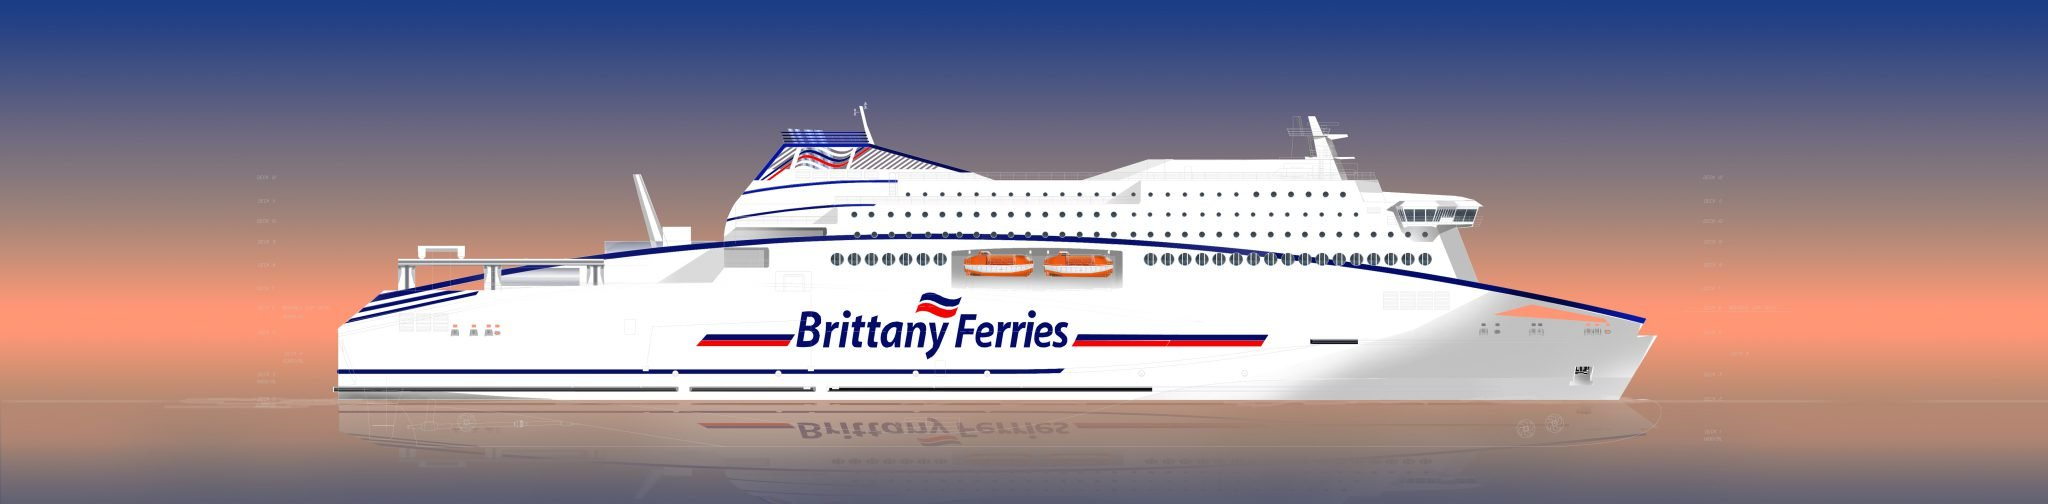 brittany-ferries-new-lng-powered-ship-design-sketch